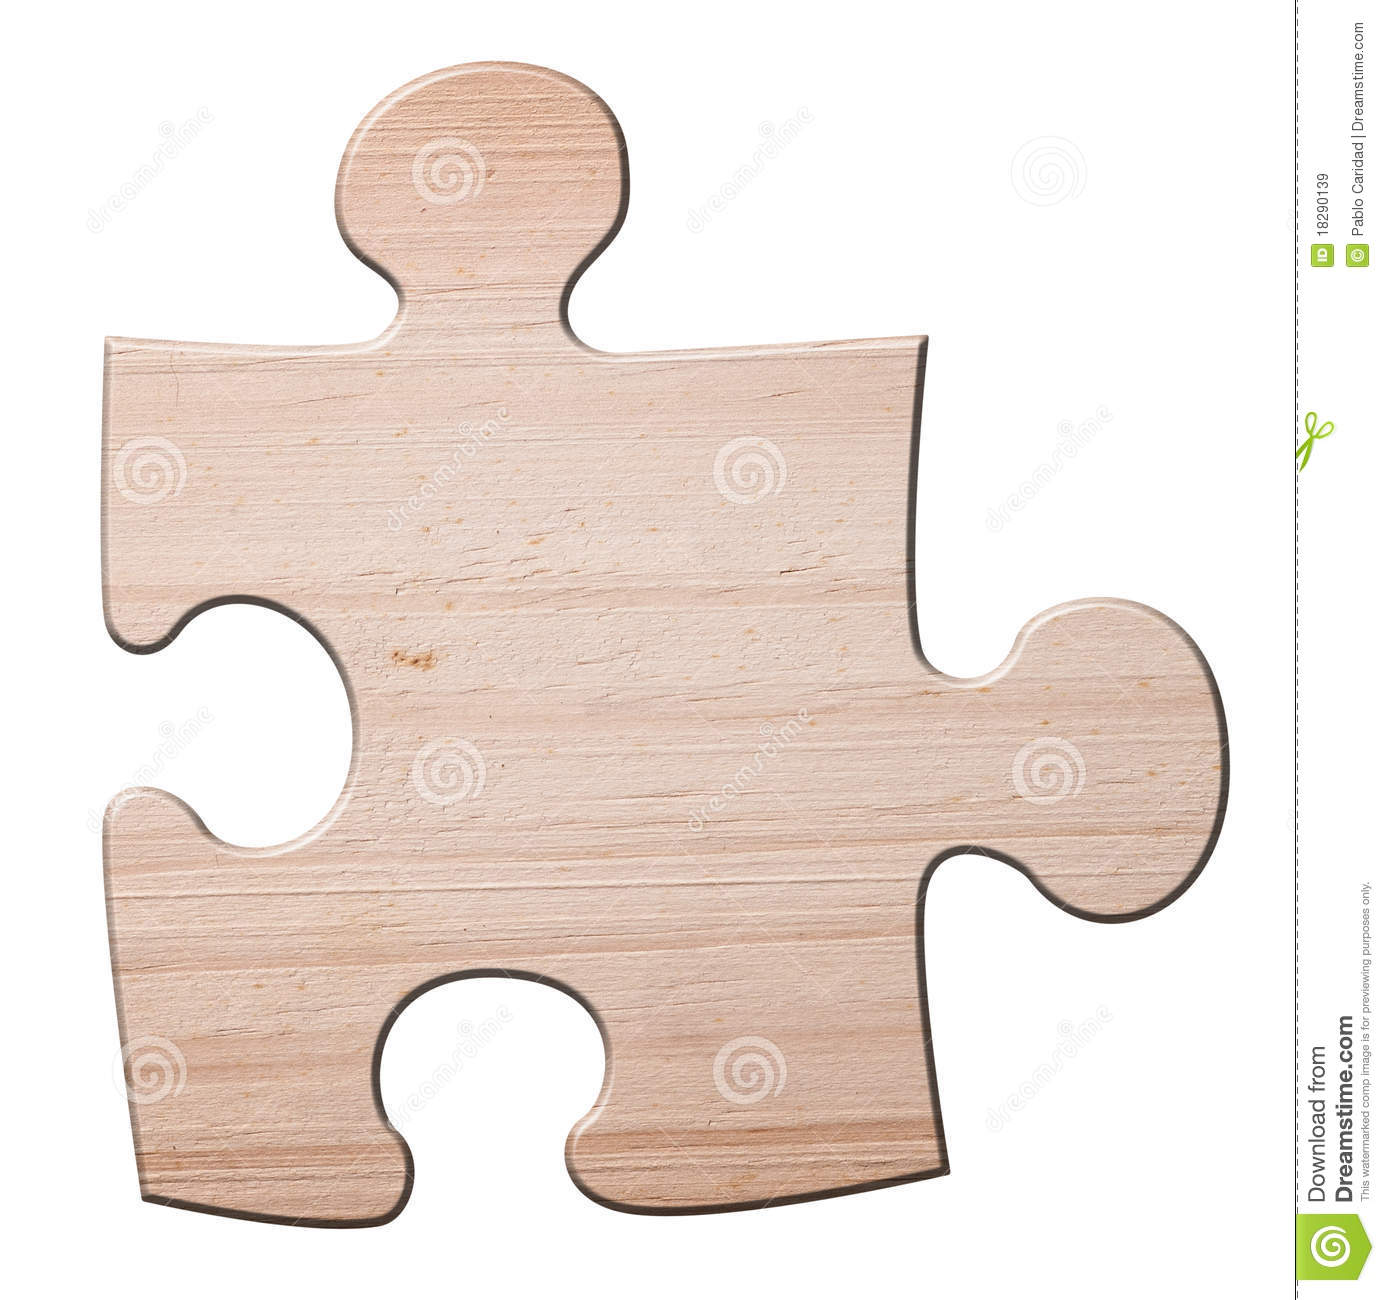 Wooden Jigzaw Puzzle Piece  Royalty Free Stock Images   Image